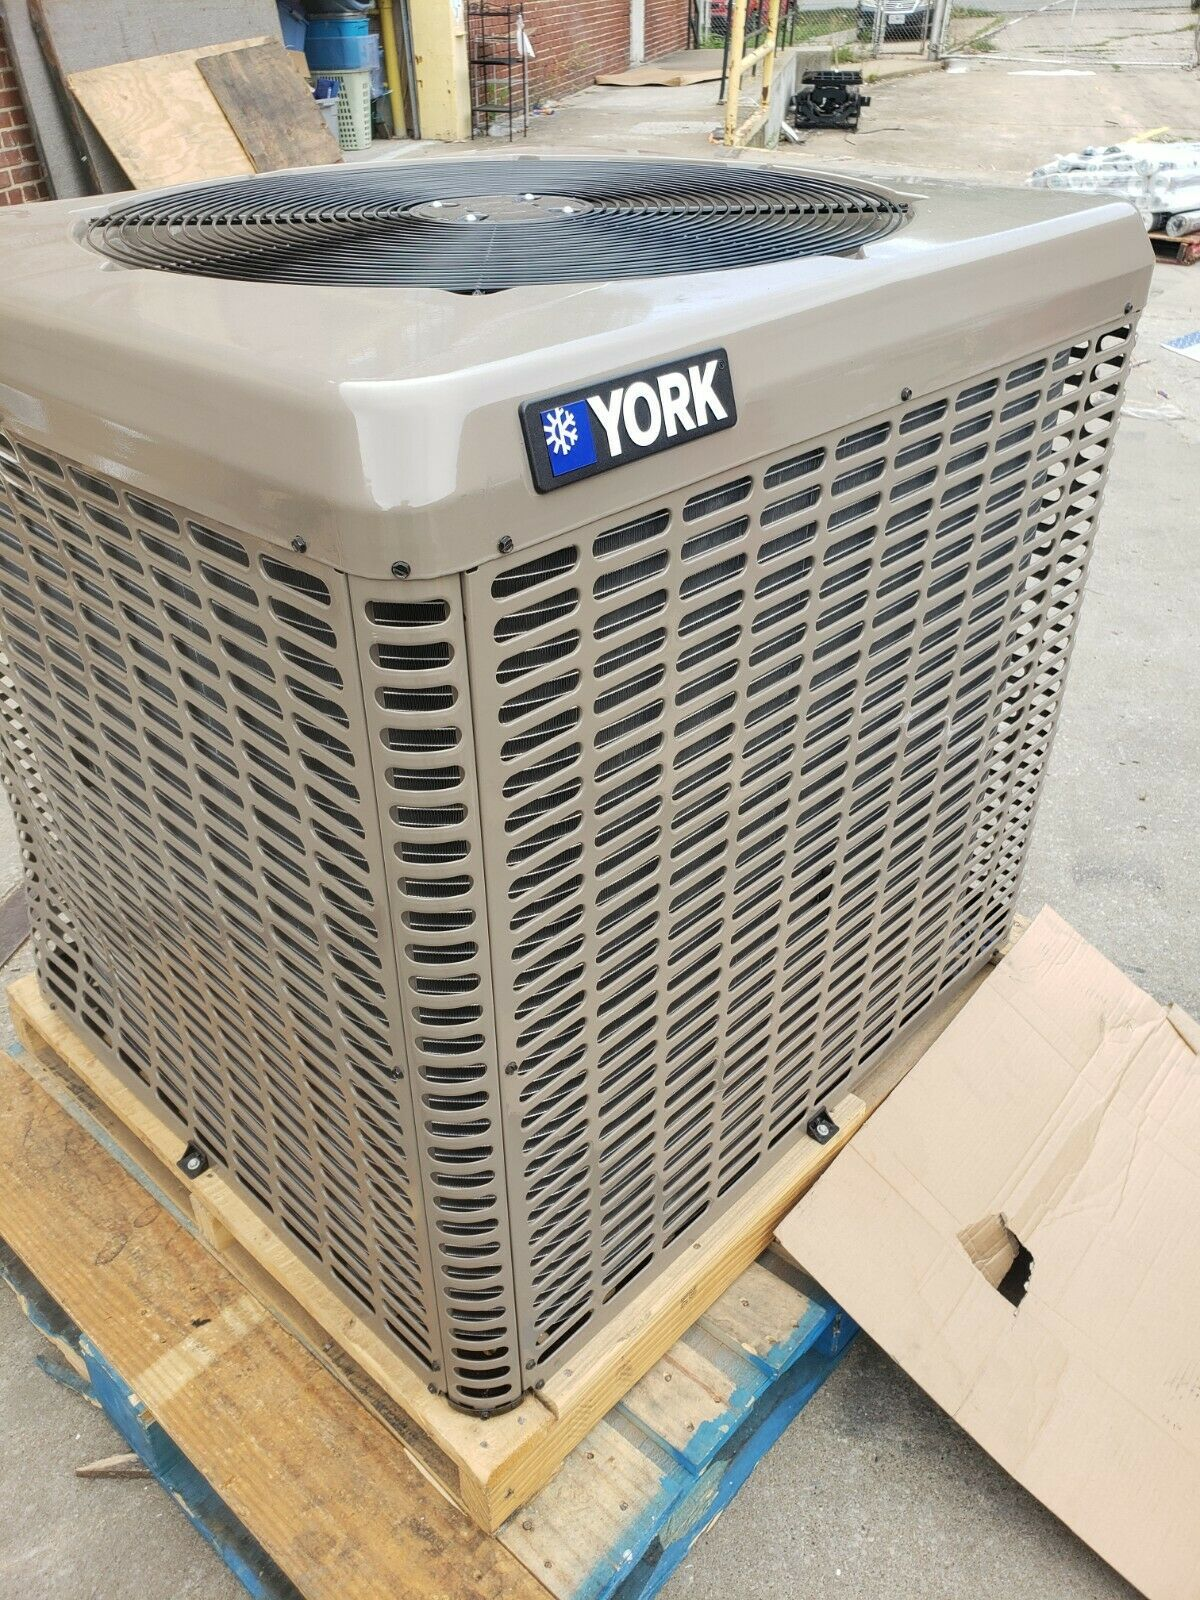 4 Ton Air Conditioner In 2020 Air Conditioner Carrier Air Conditioner Split System Air Conditioner